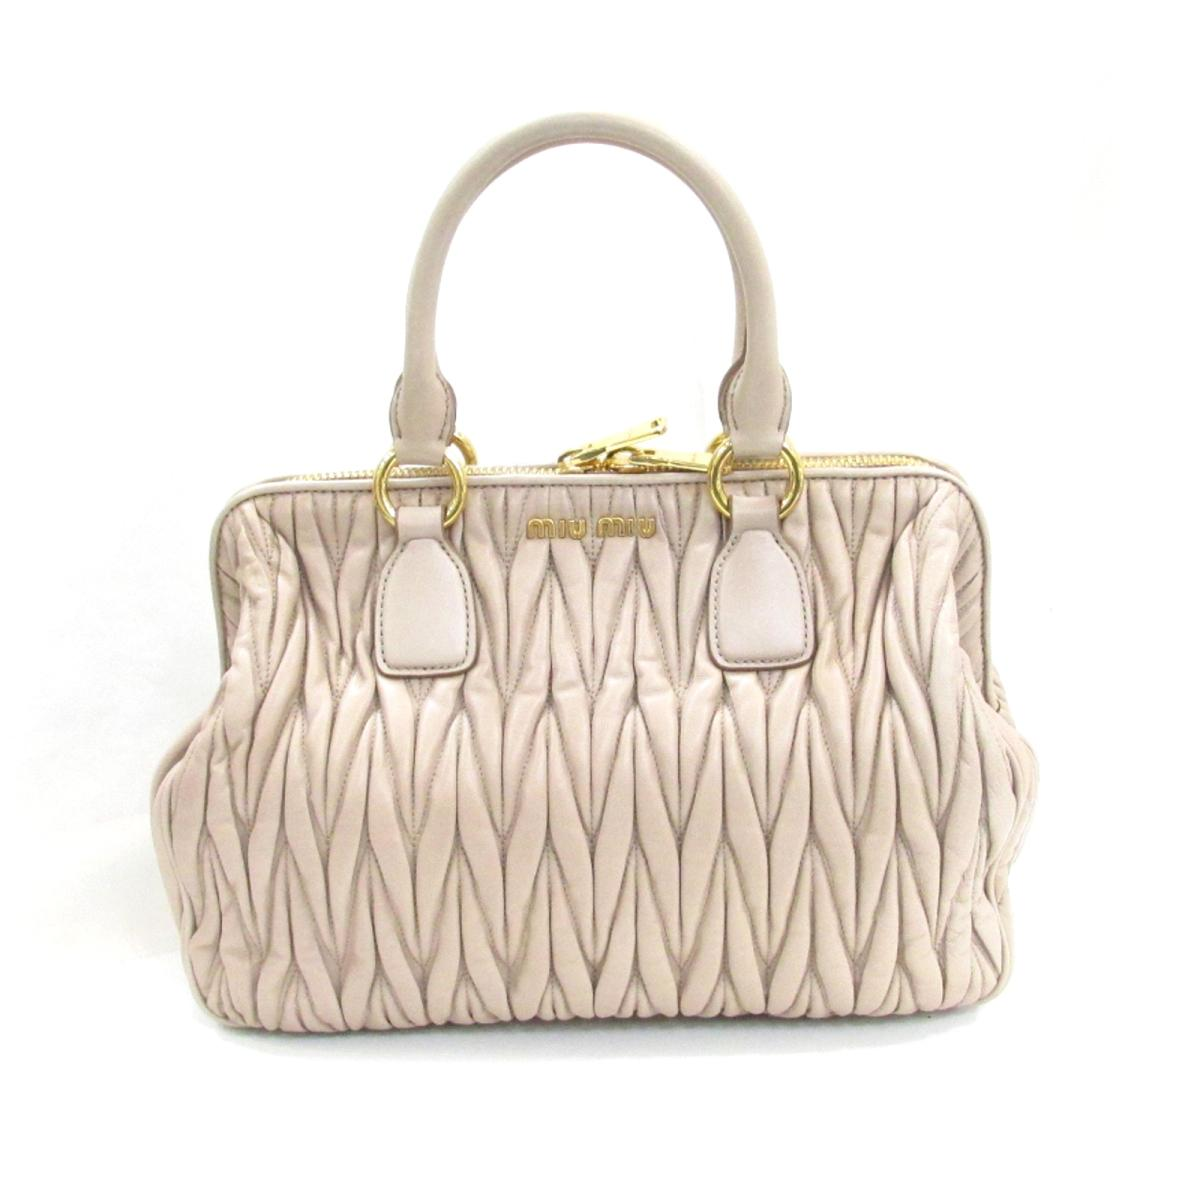 Authentic miu miu 2way Shoulder HandBag Lambskin Leather Pink Beige (RLN061) 786c28e30f468